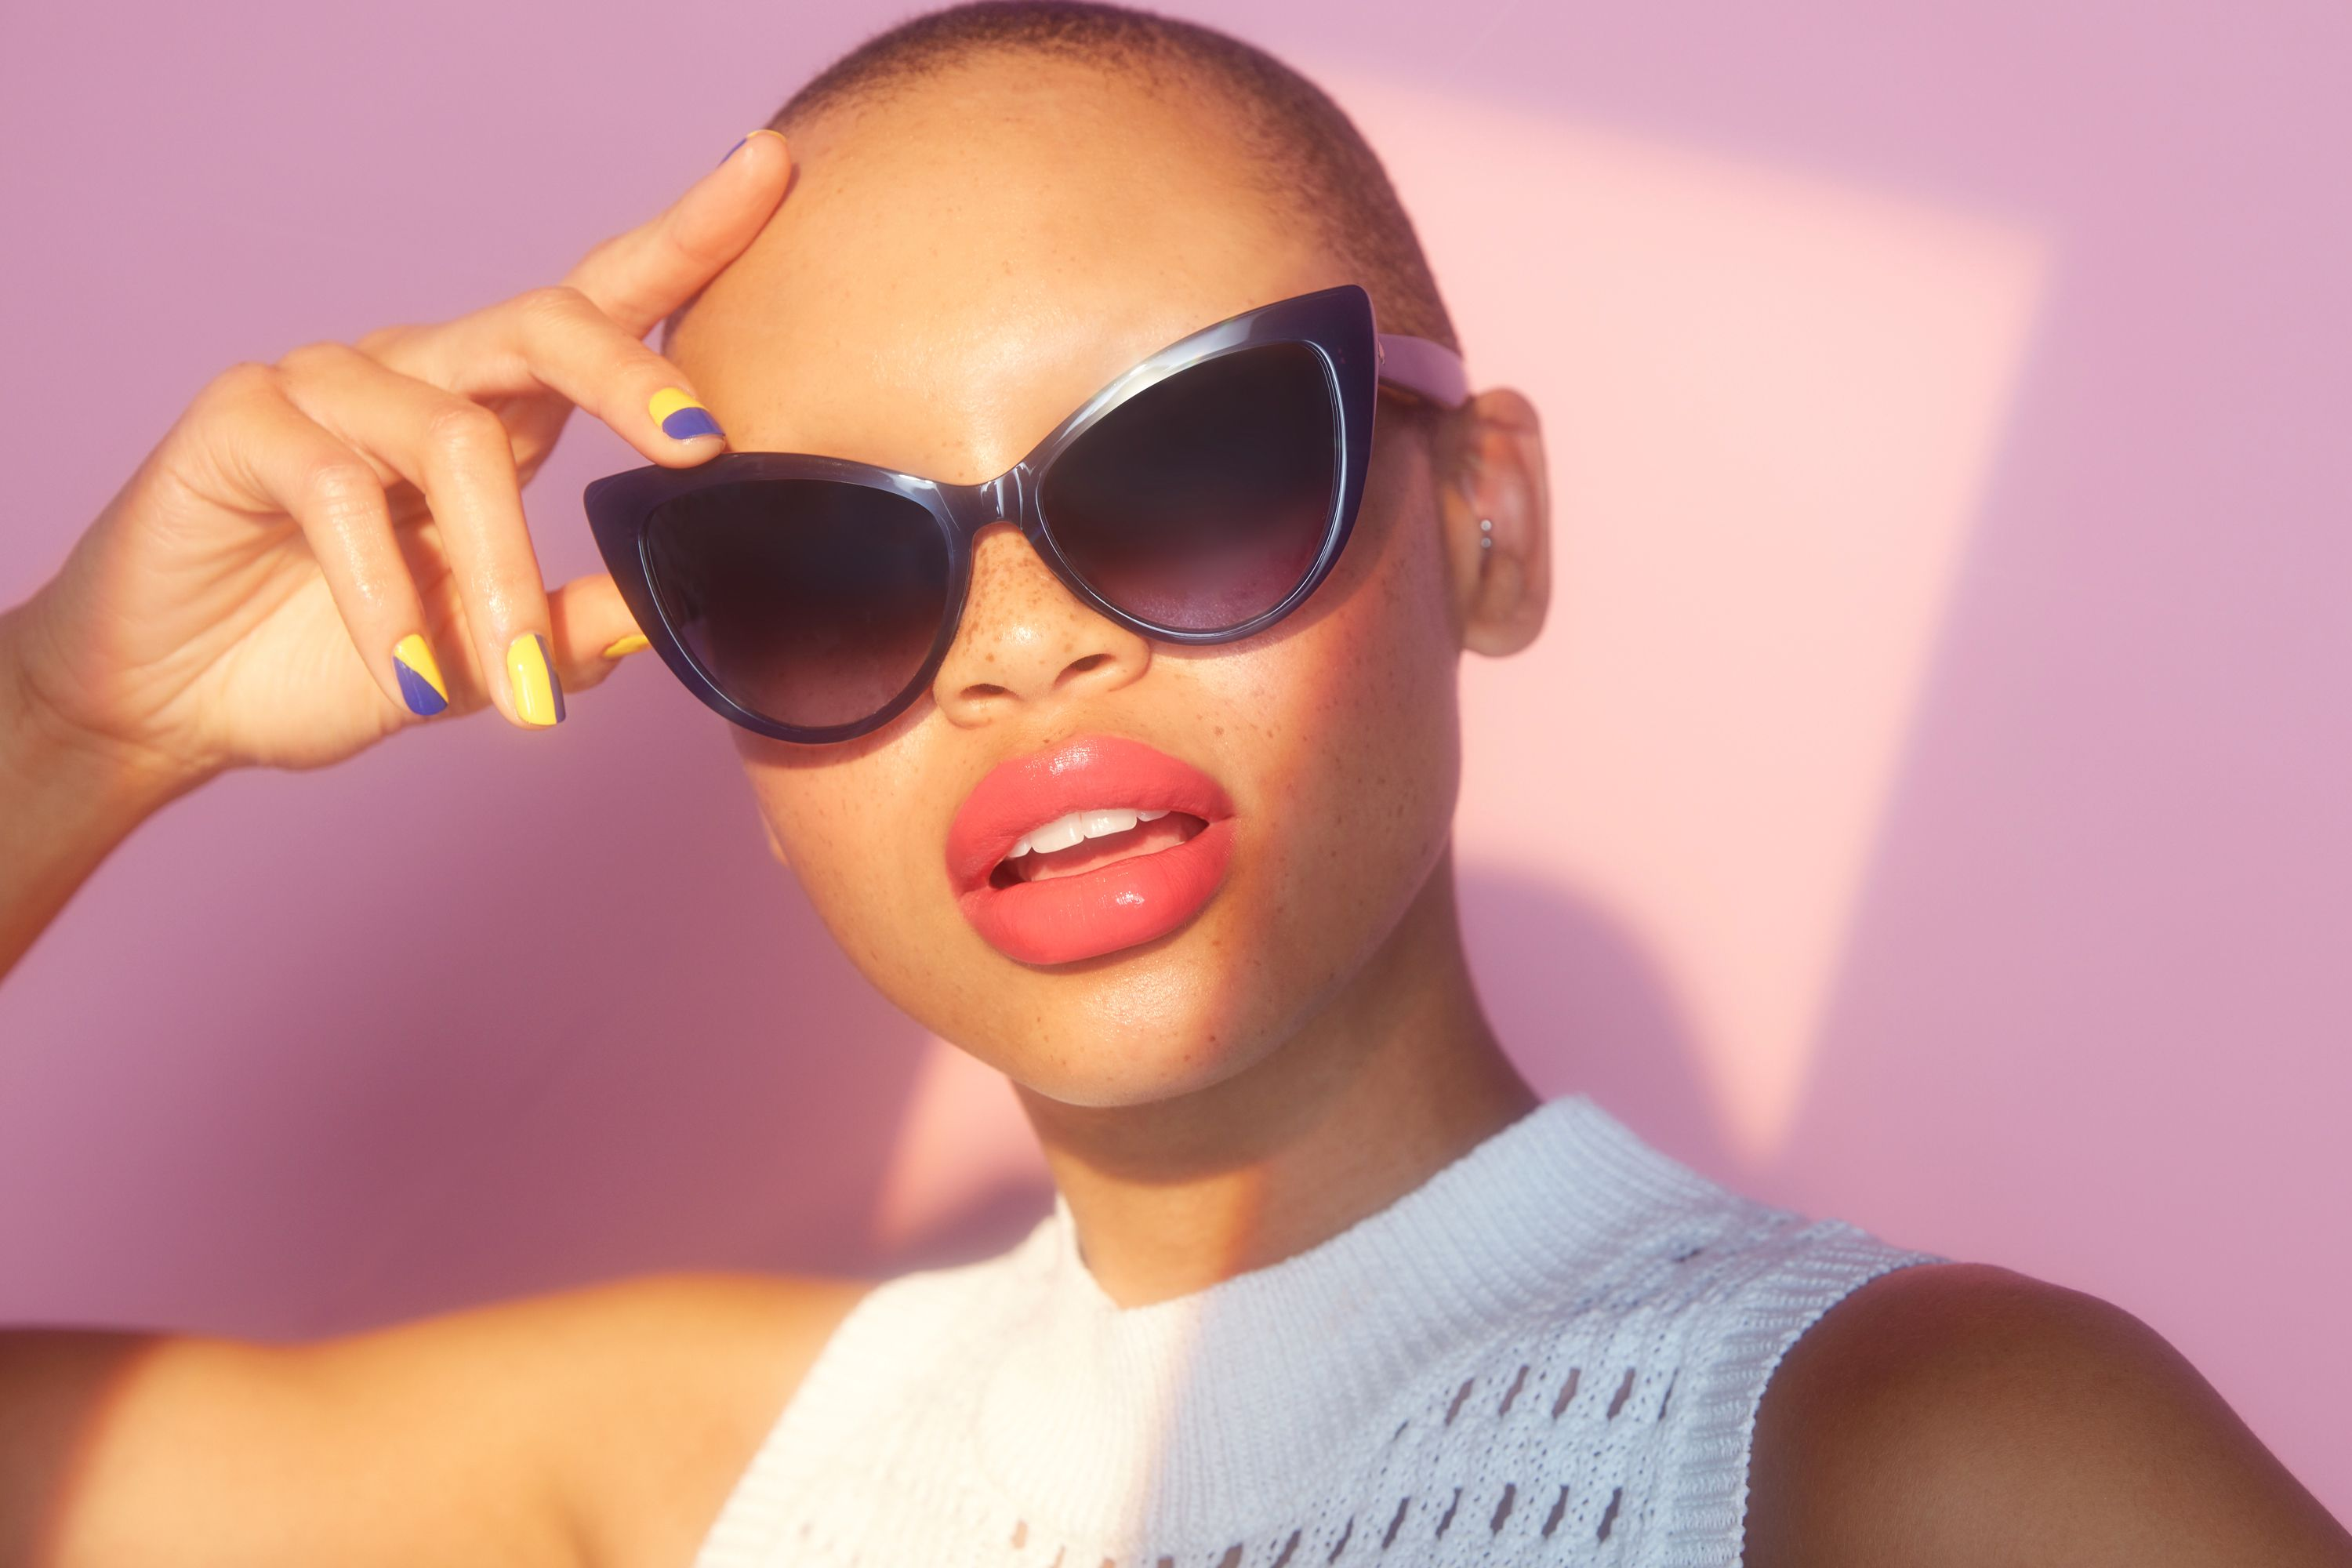 4 Sunglasses Styles You'll Never Regret Buying